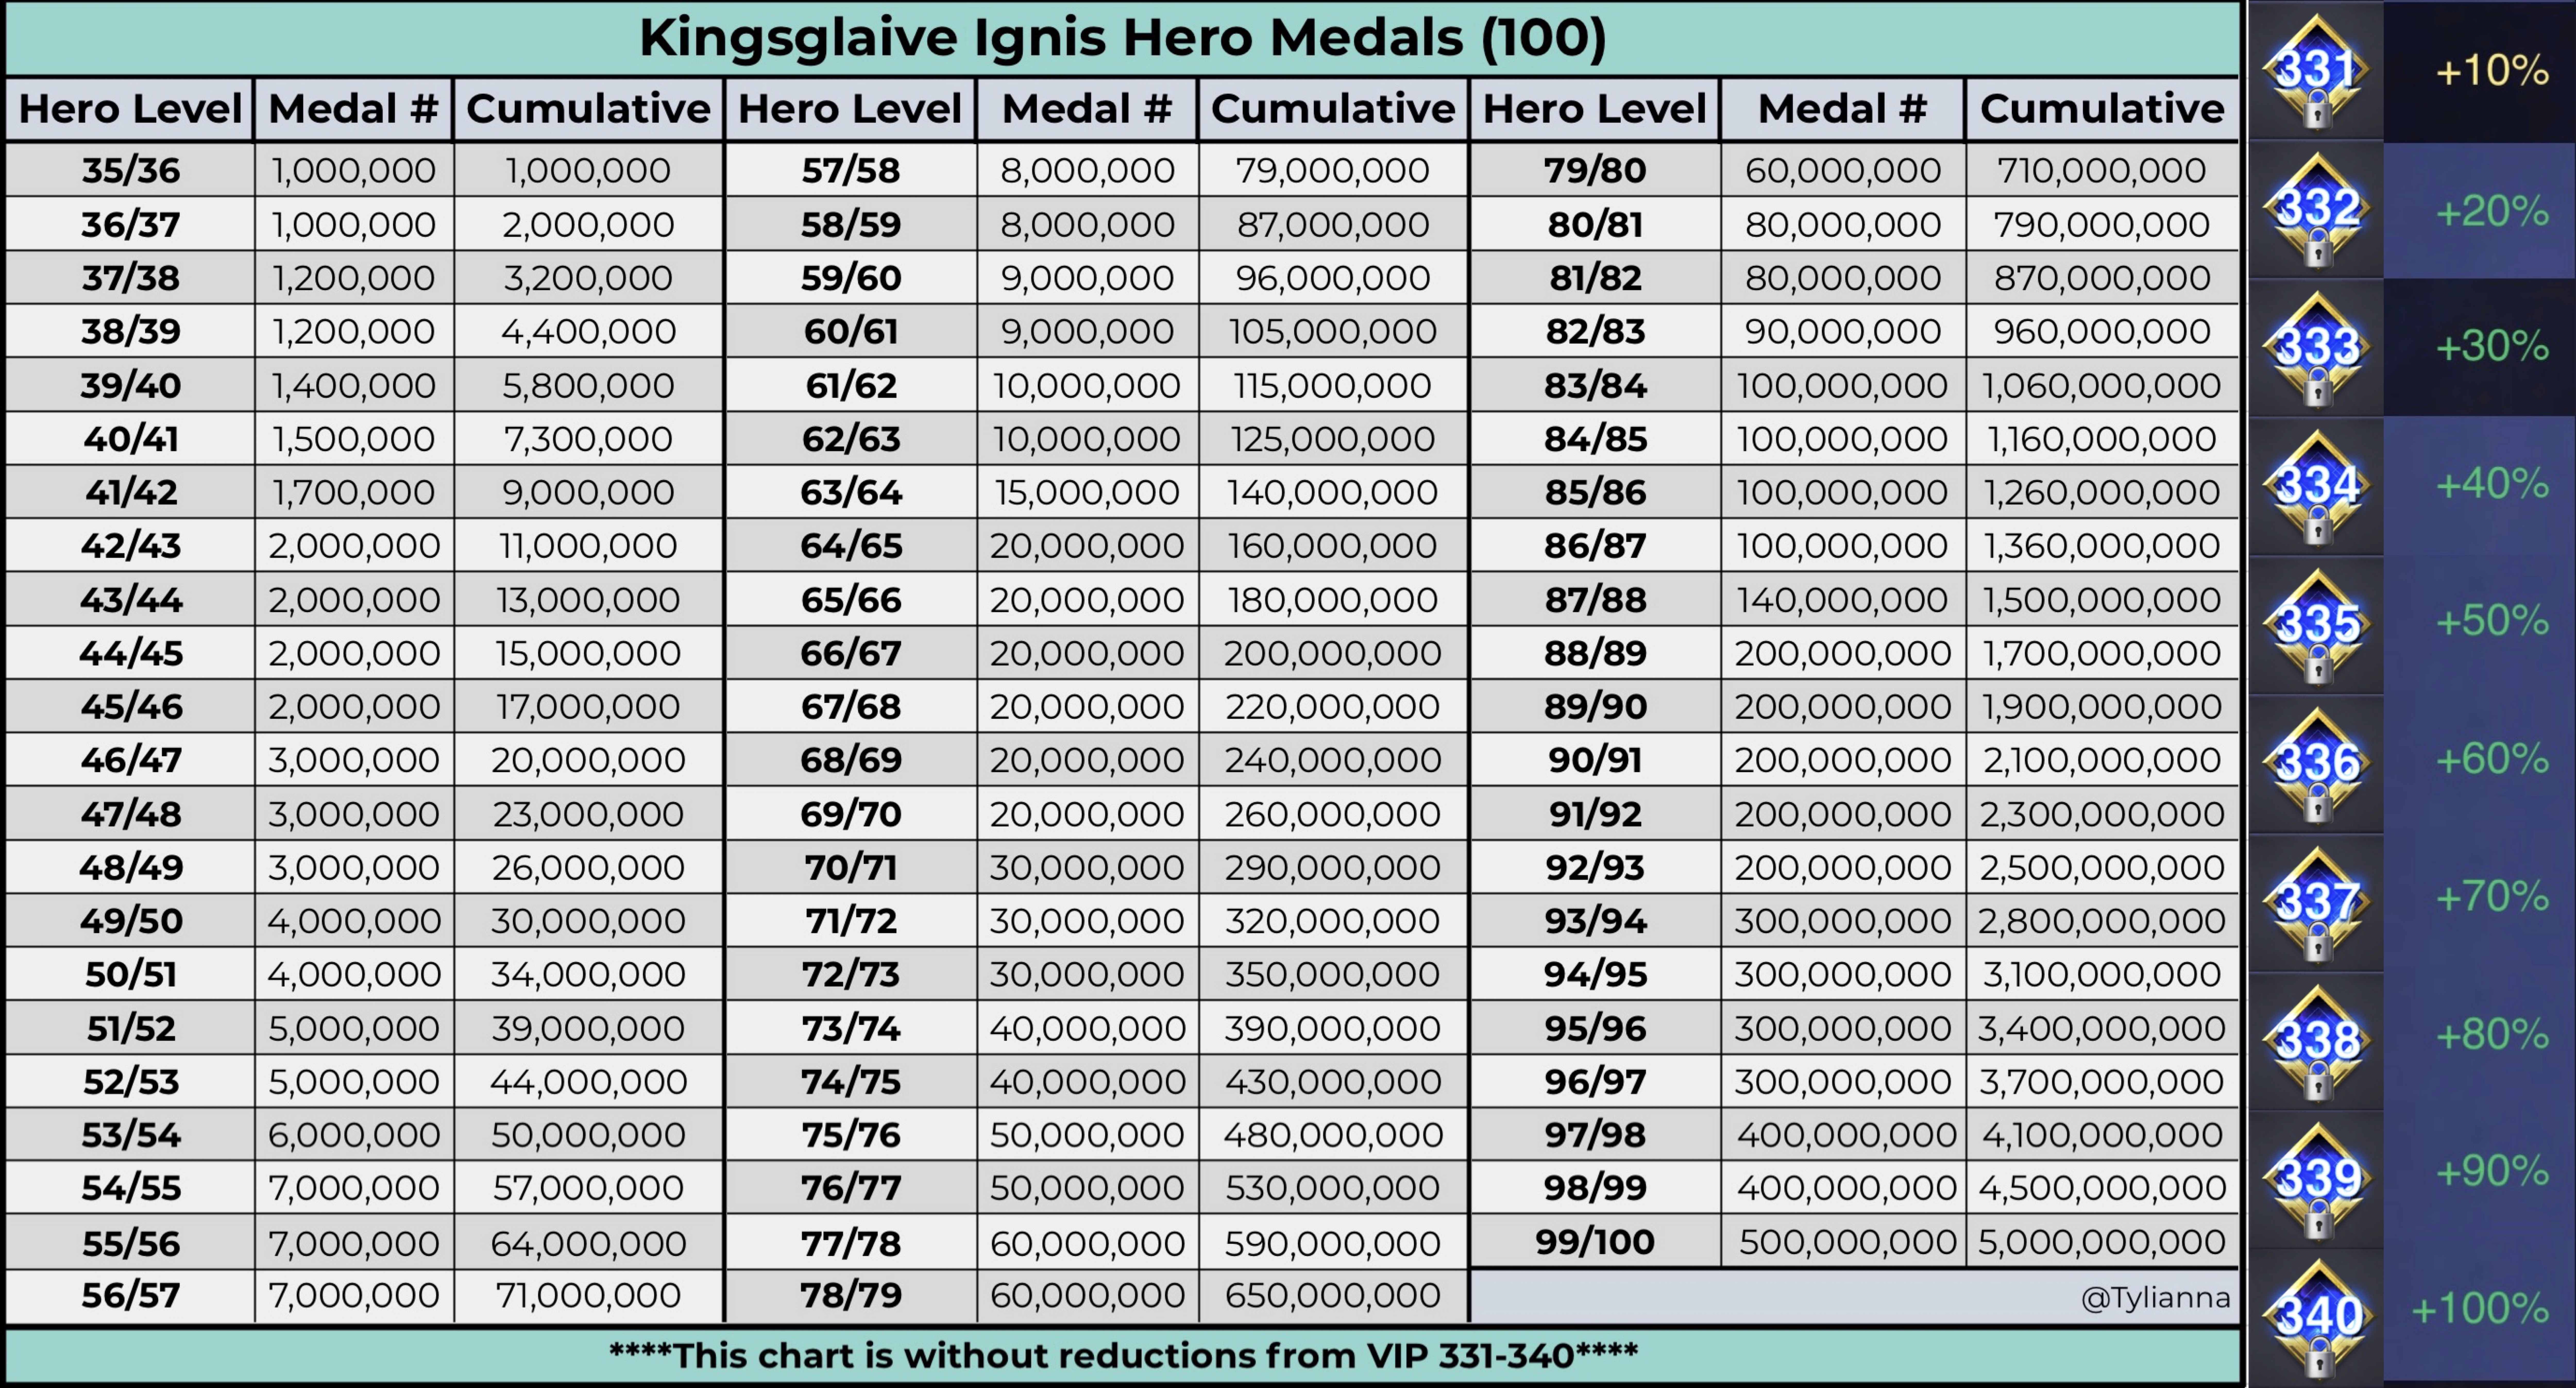 Kingsglaive Ignis Medals chart